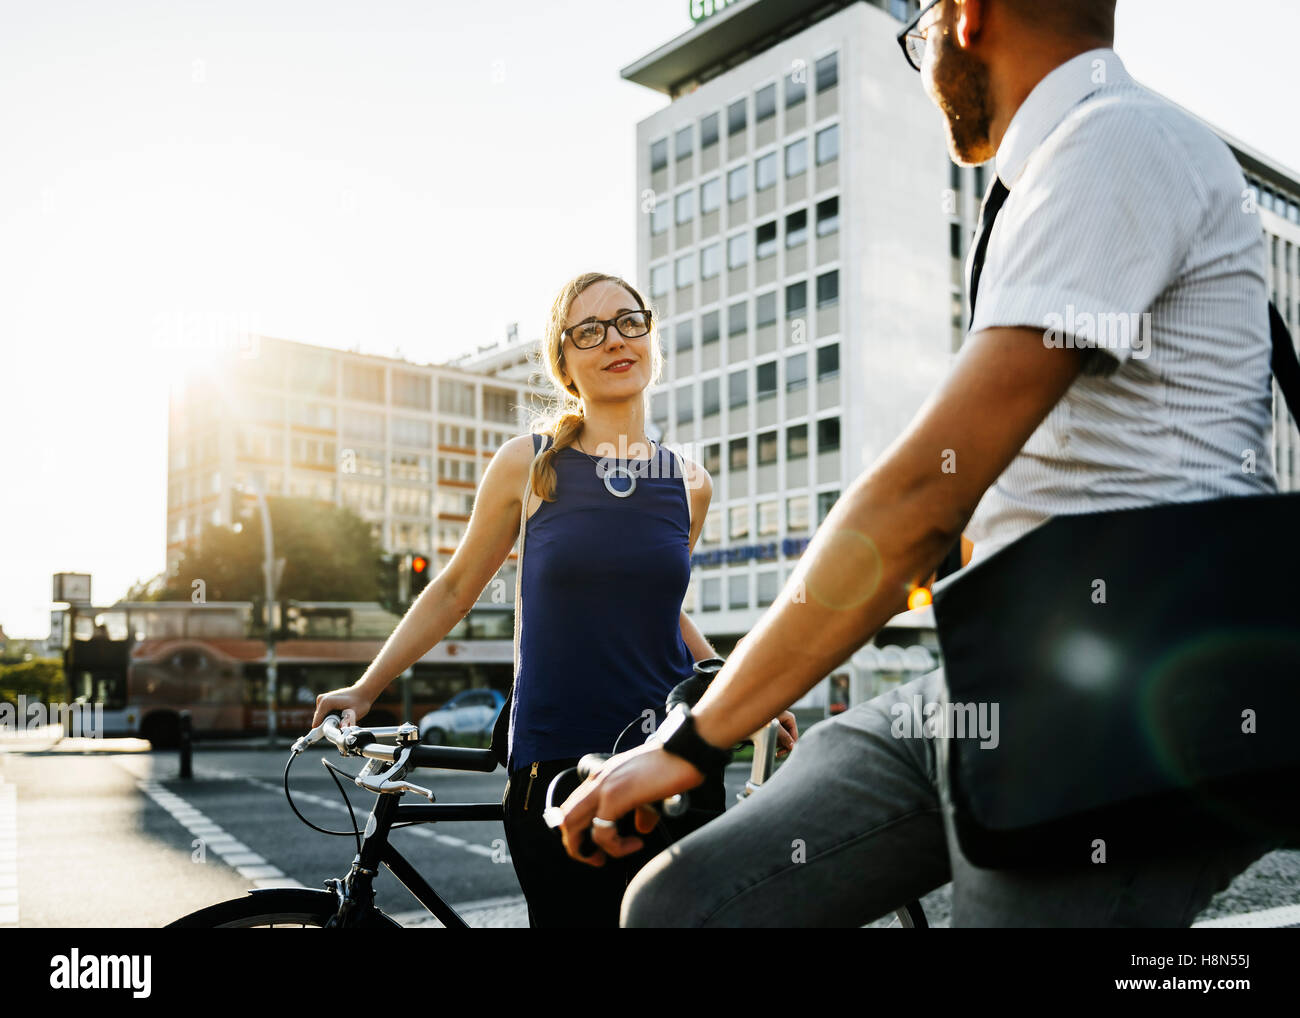 Man and woman in city, woman smiling - Stock Image